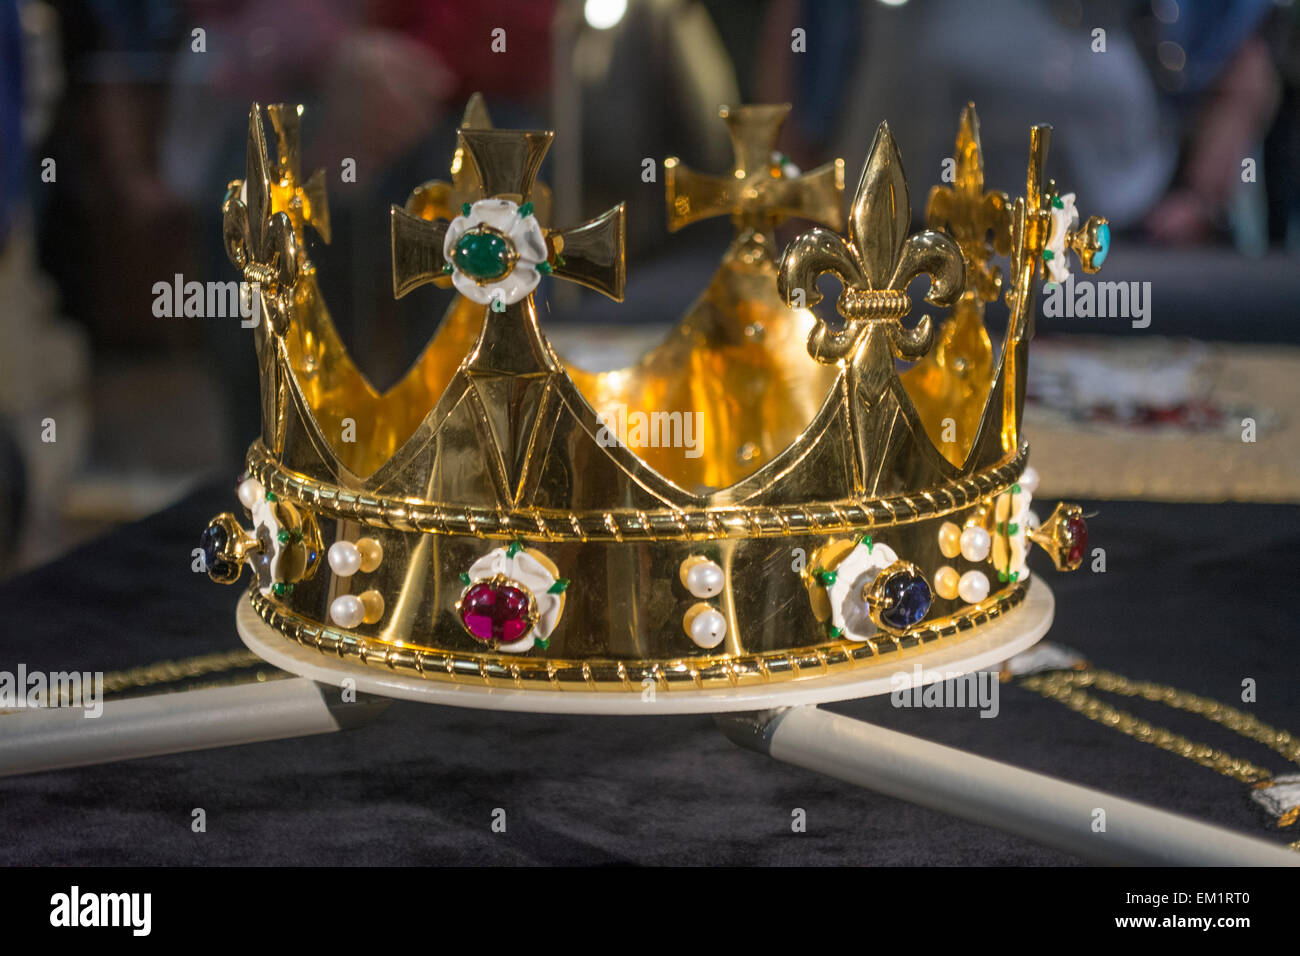 replica crown stock photos replica crown stock images alamy. Black Bedroom Furniture Sets. Home Design Ideas